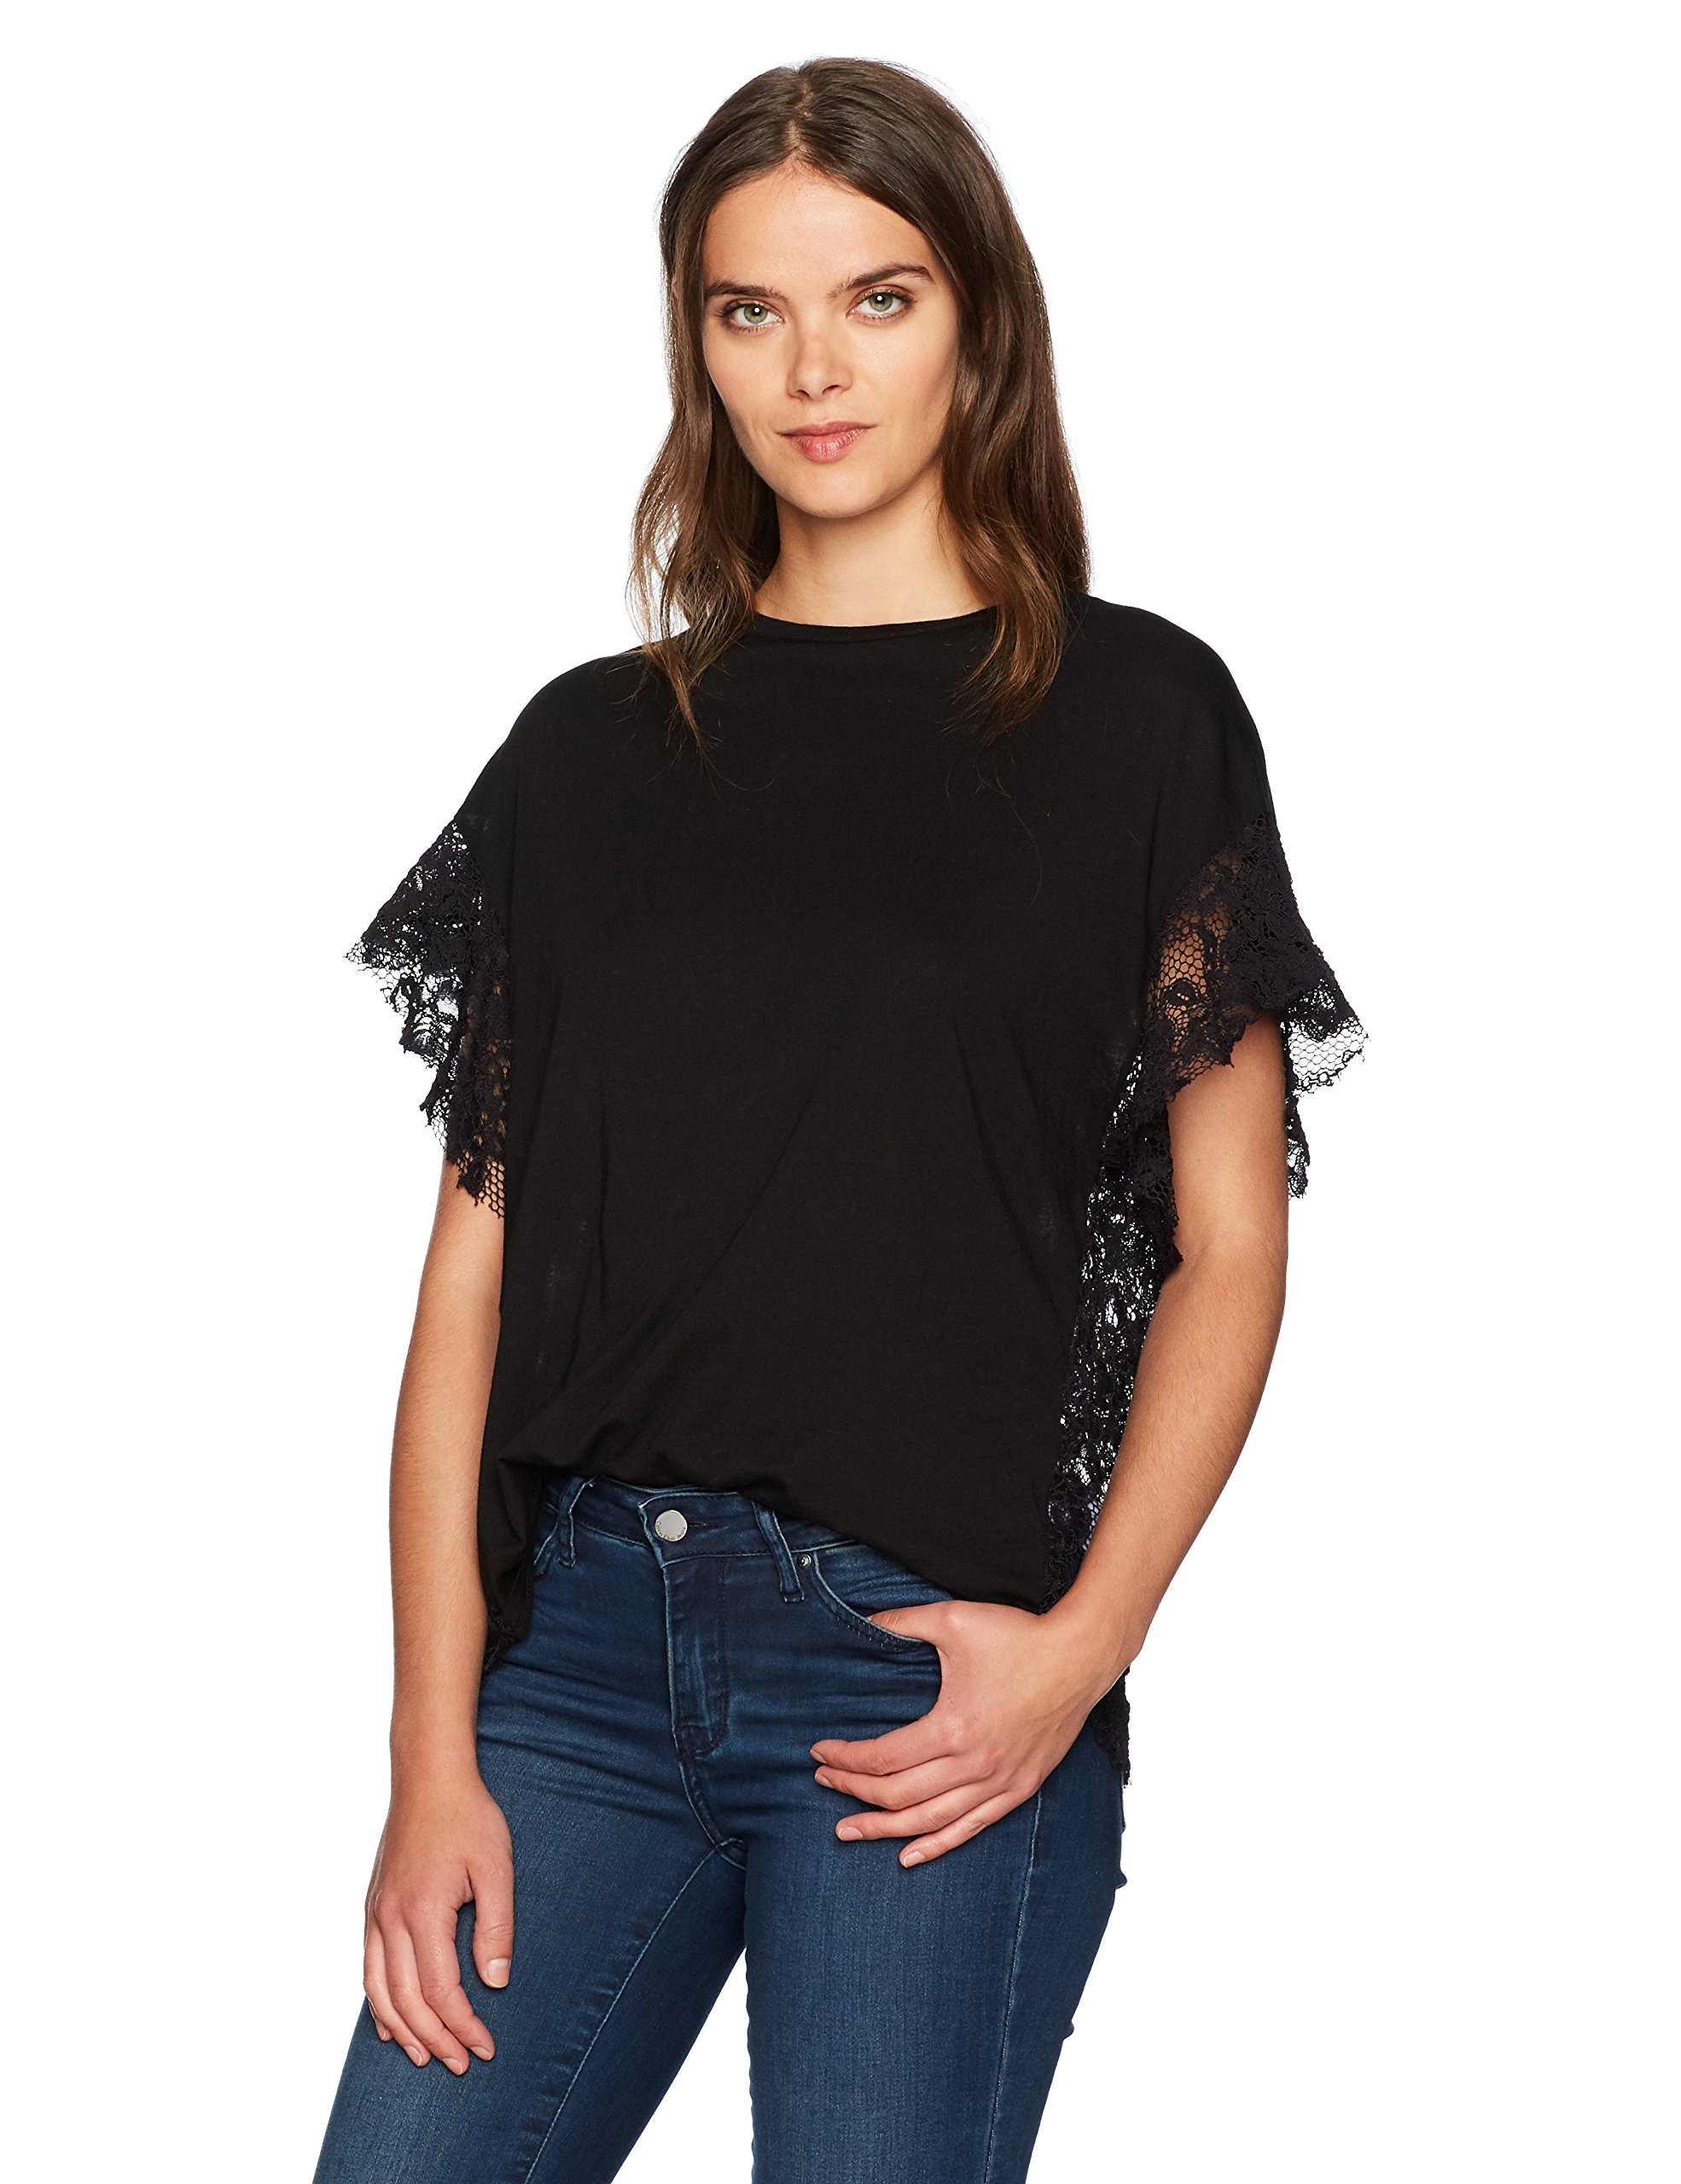 AG Adriano Goldschmied Women's Sofi Lace Tee, True Black, M